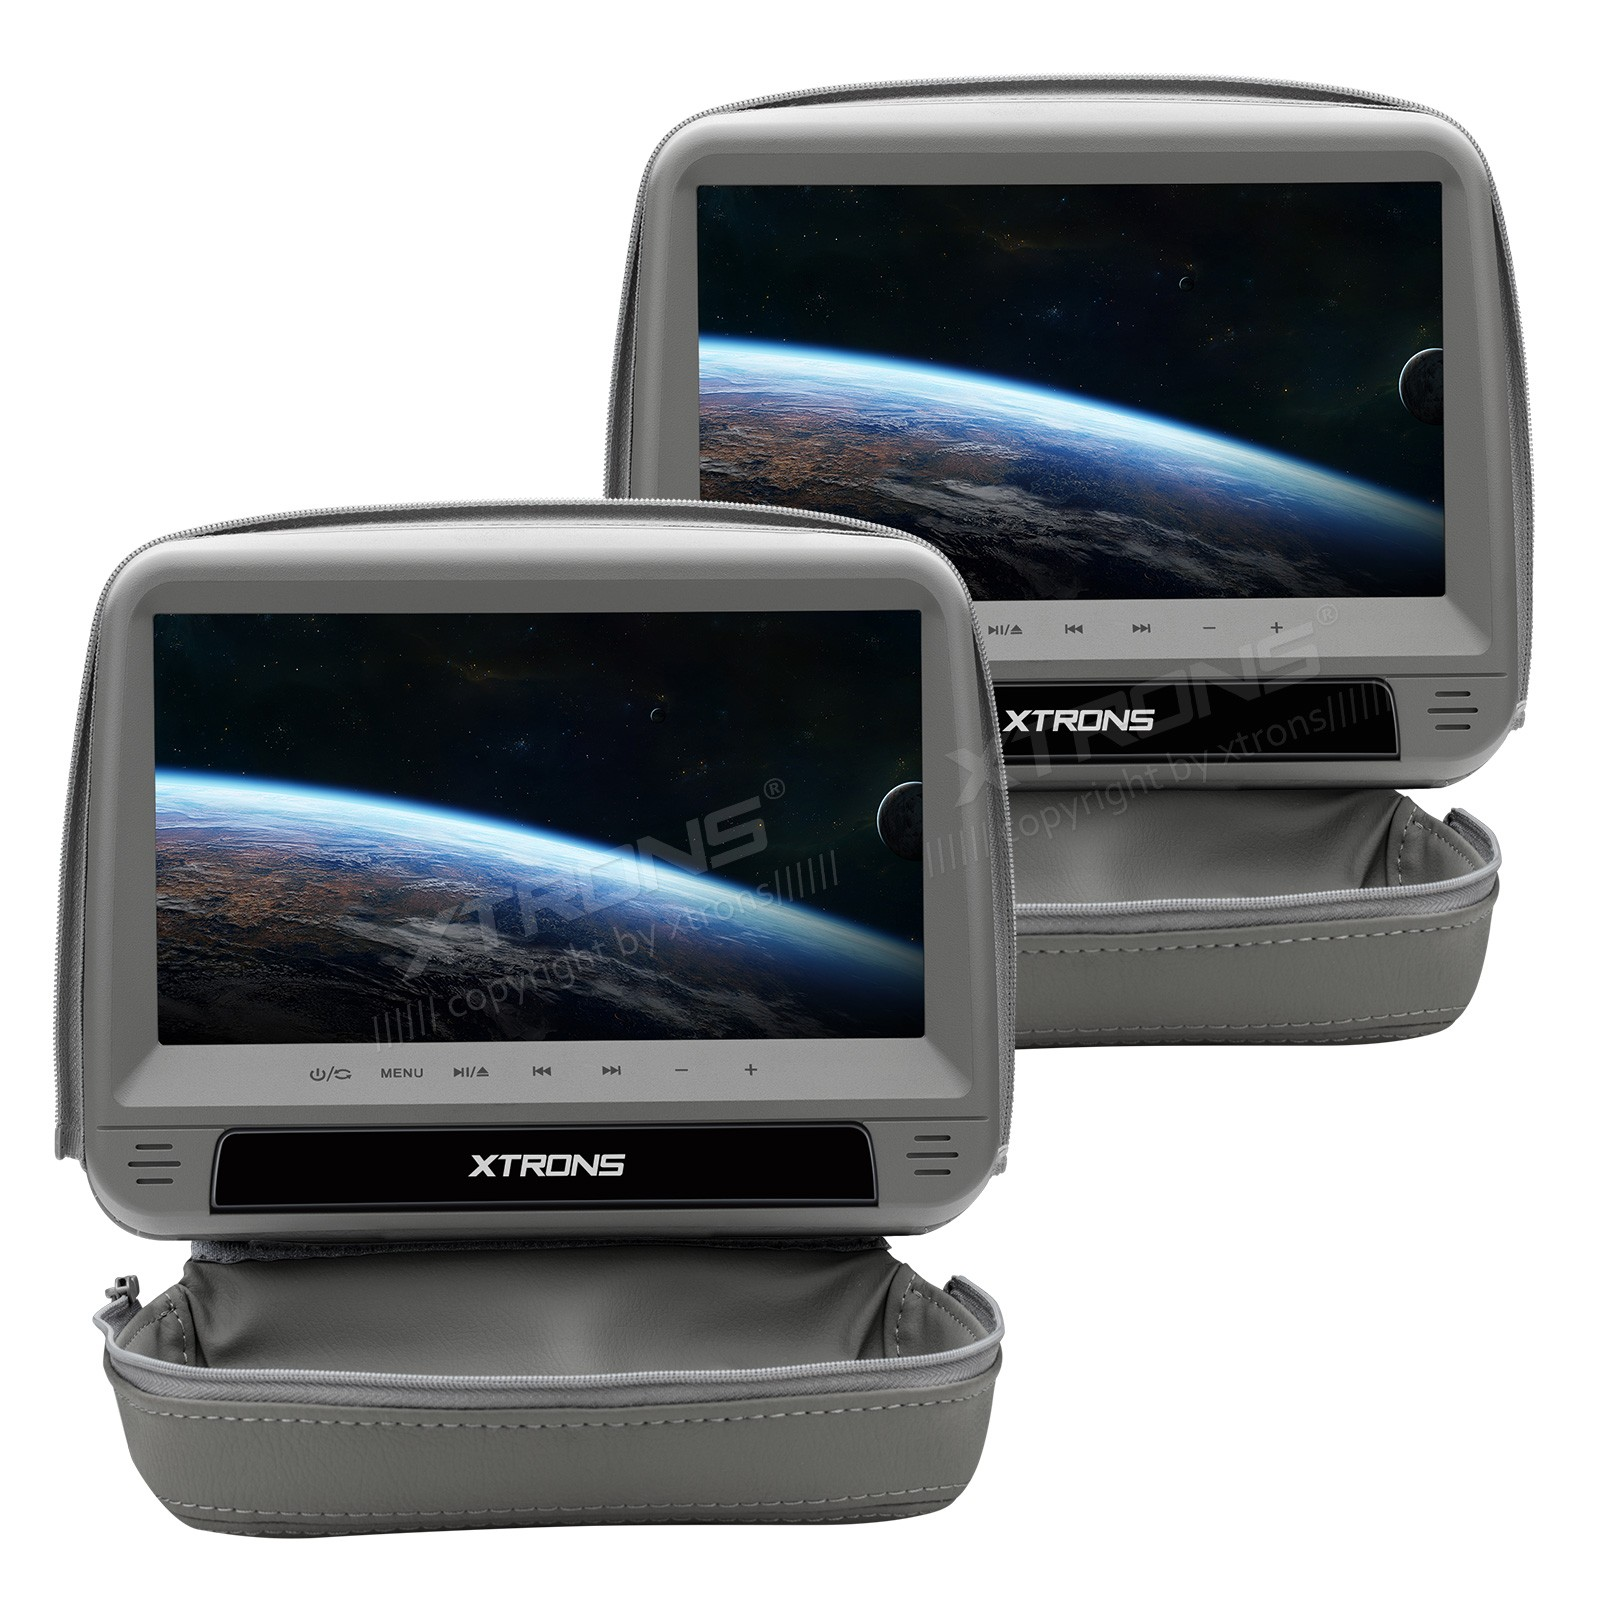 2x9-hd-digital-panel-leather-cover-car-headrest-dvd-players-with-zipper-design